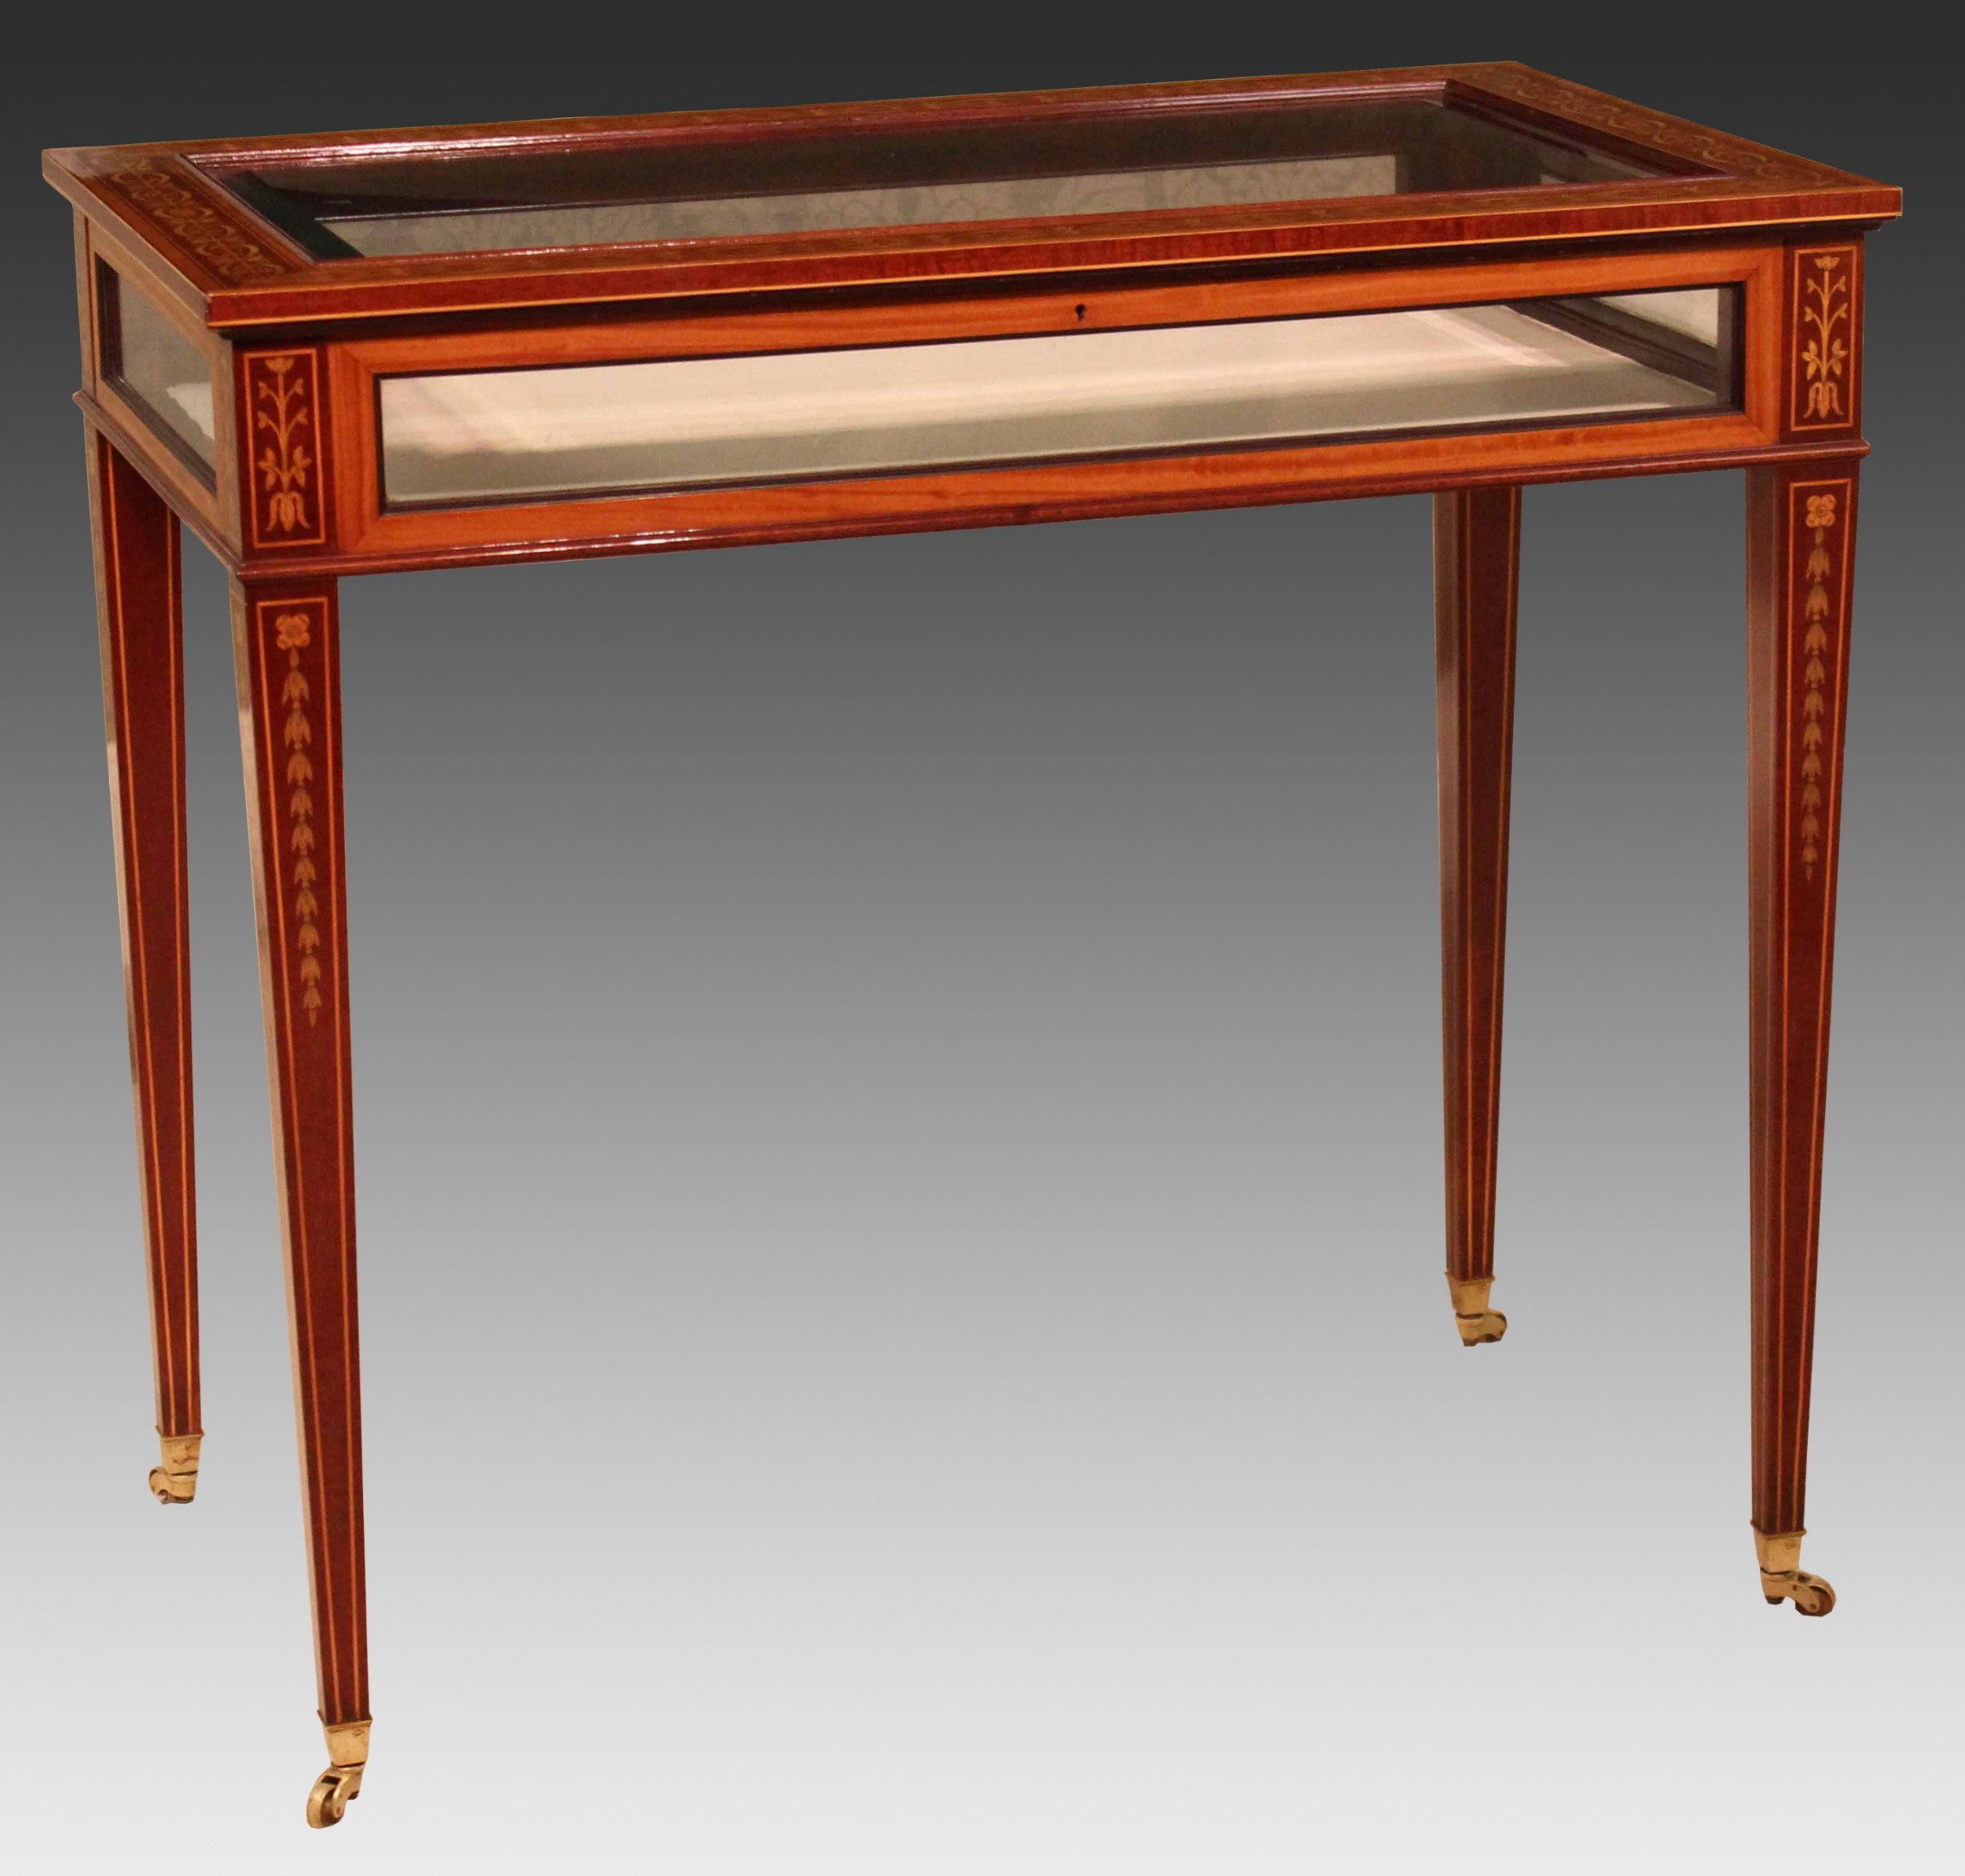 an edwards roberts fine quality late victorian mahogany inlaid rectangular bijouterie table